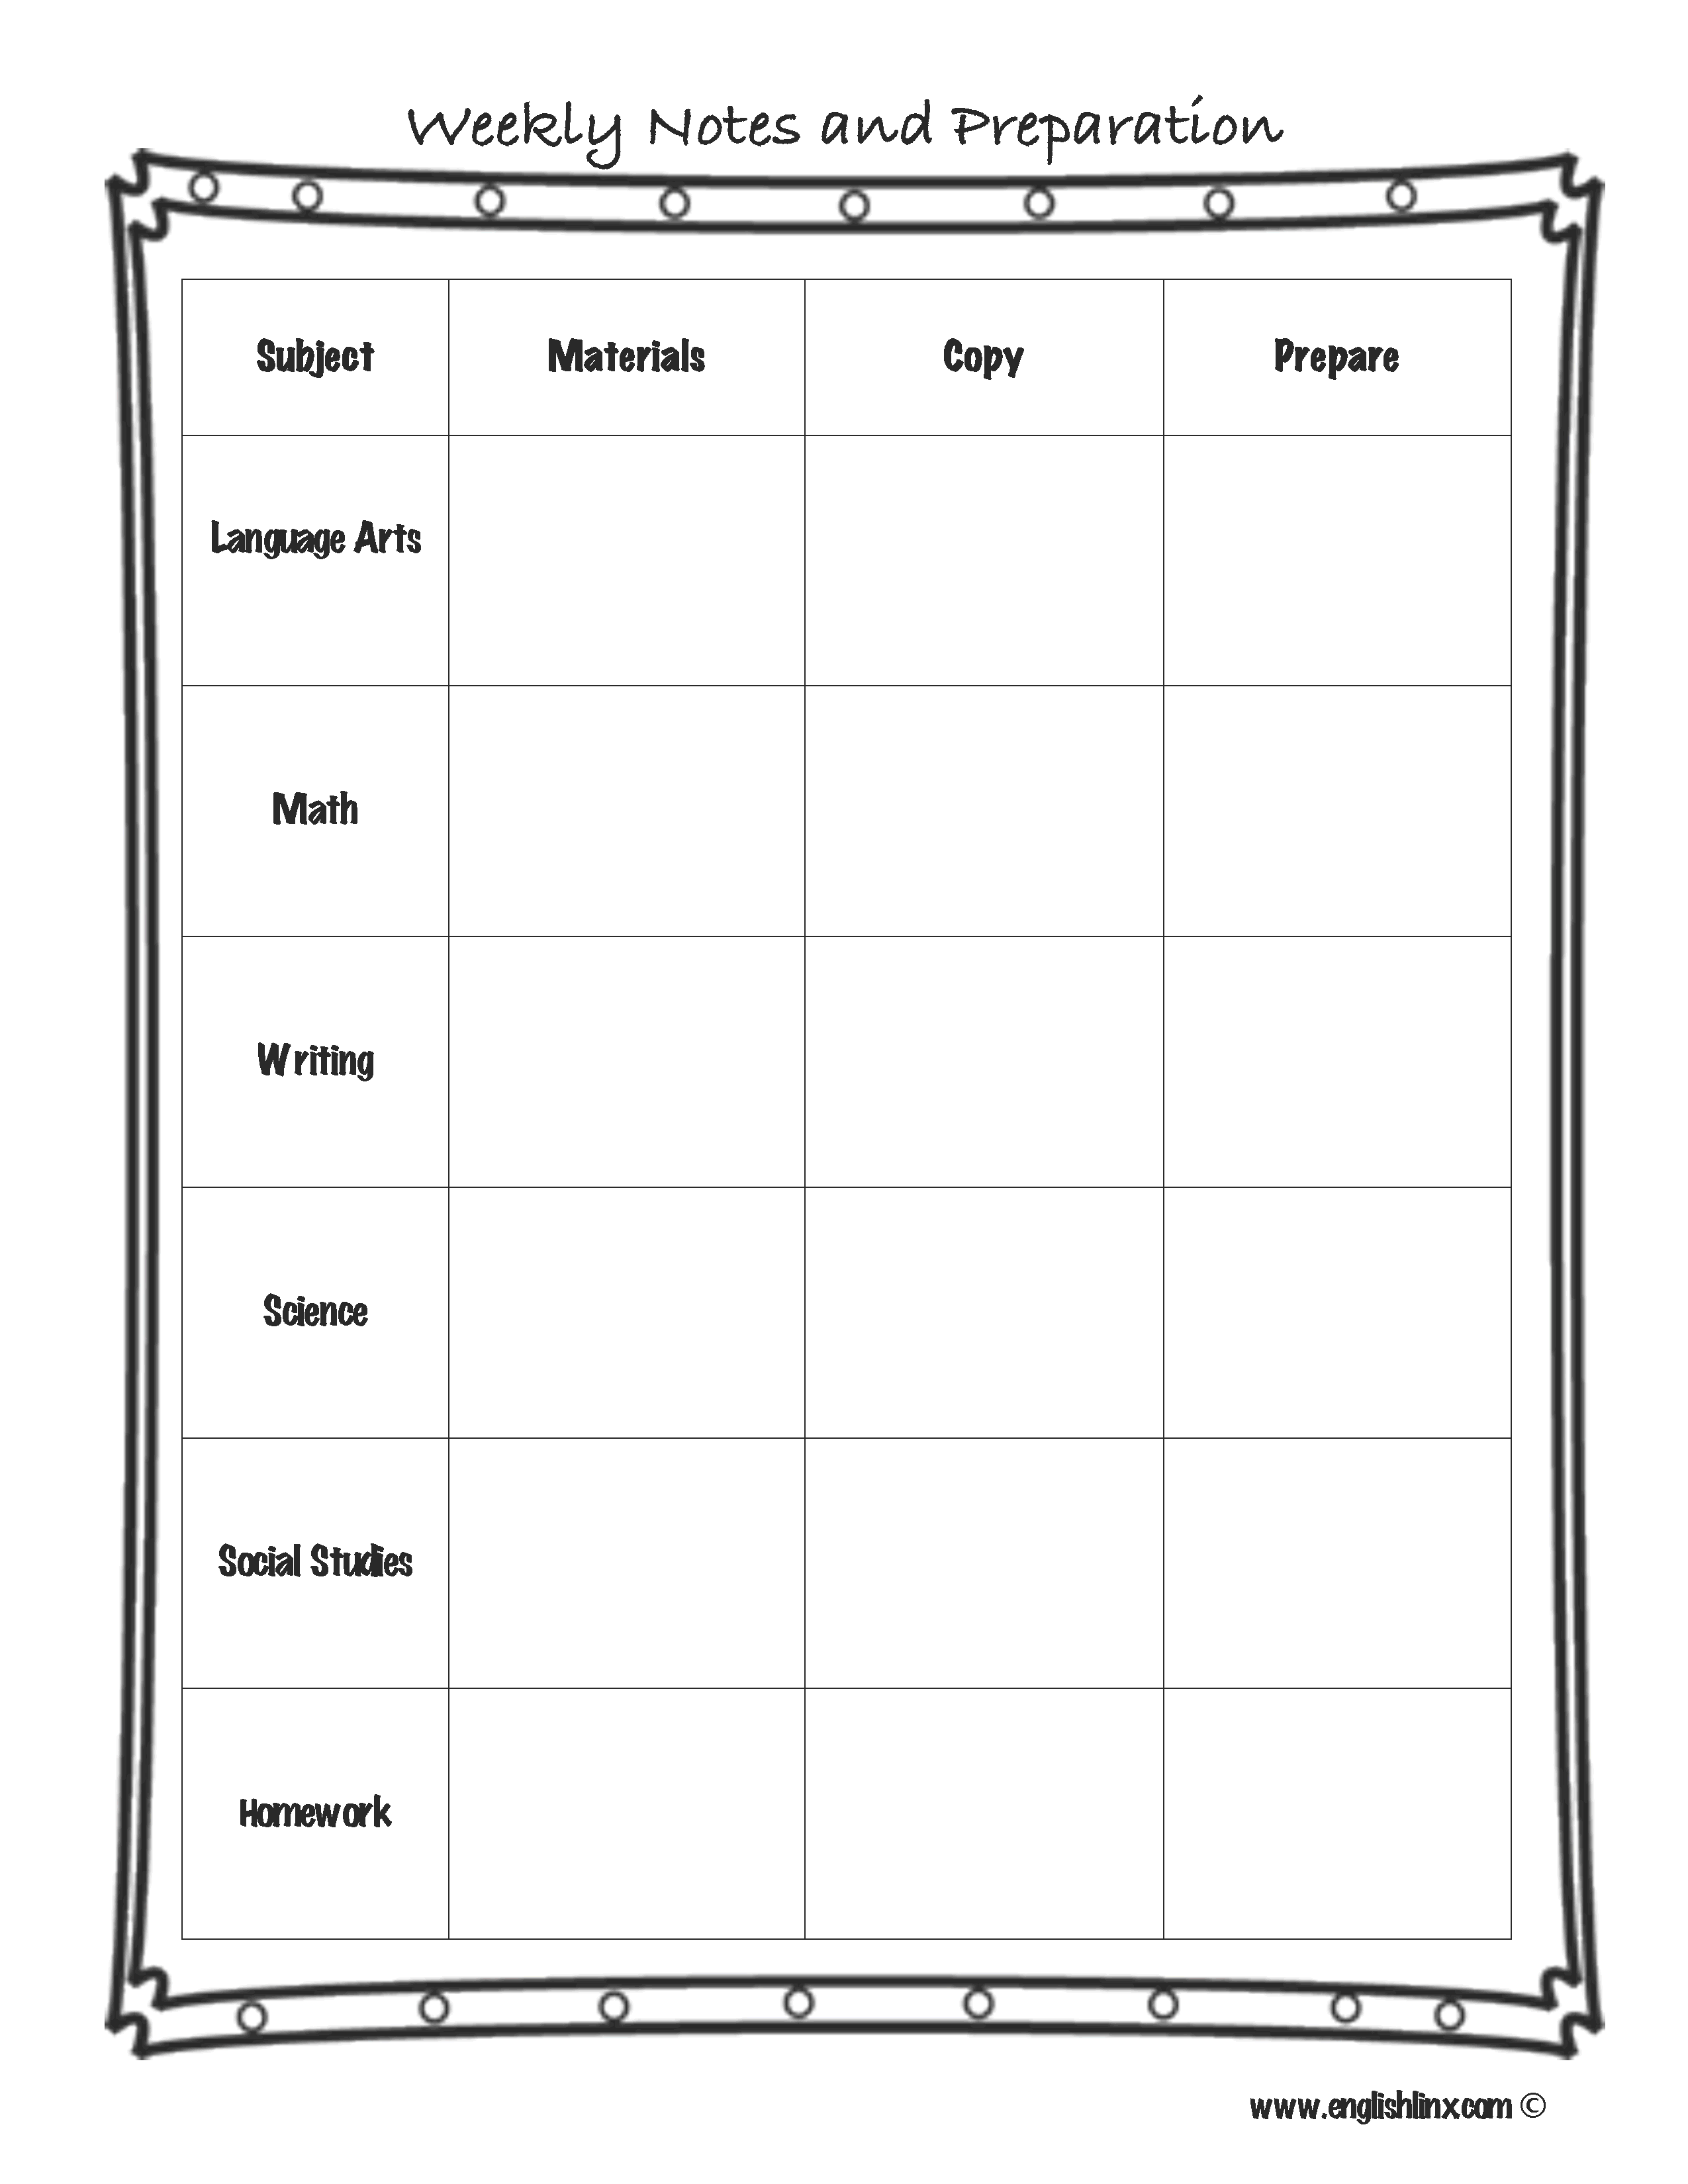 Englishlinxcom Lesson Plan Template - Common core lesson plan templates